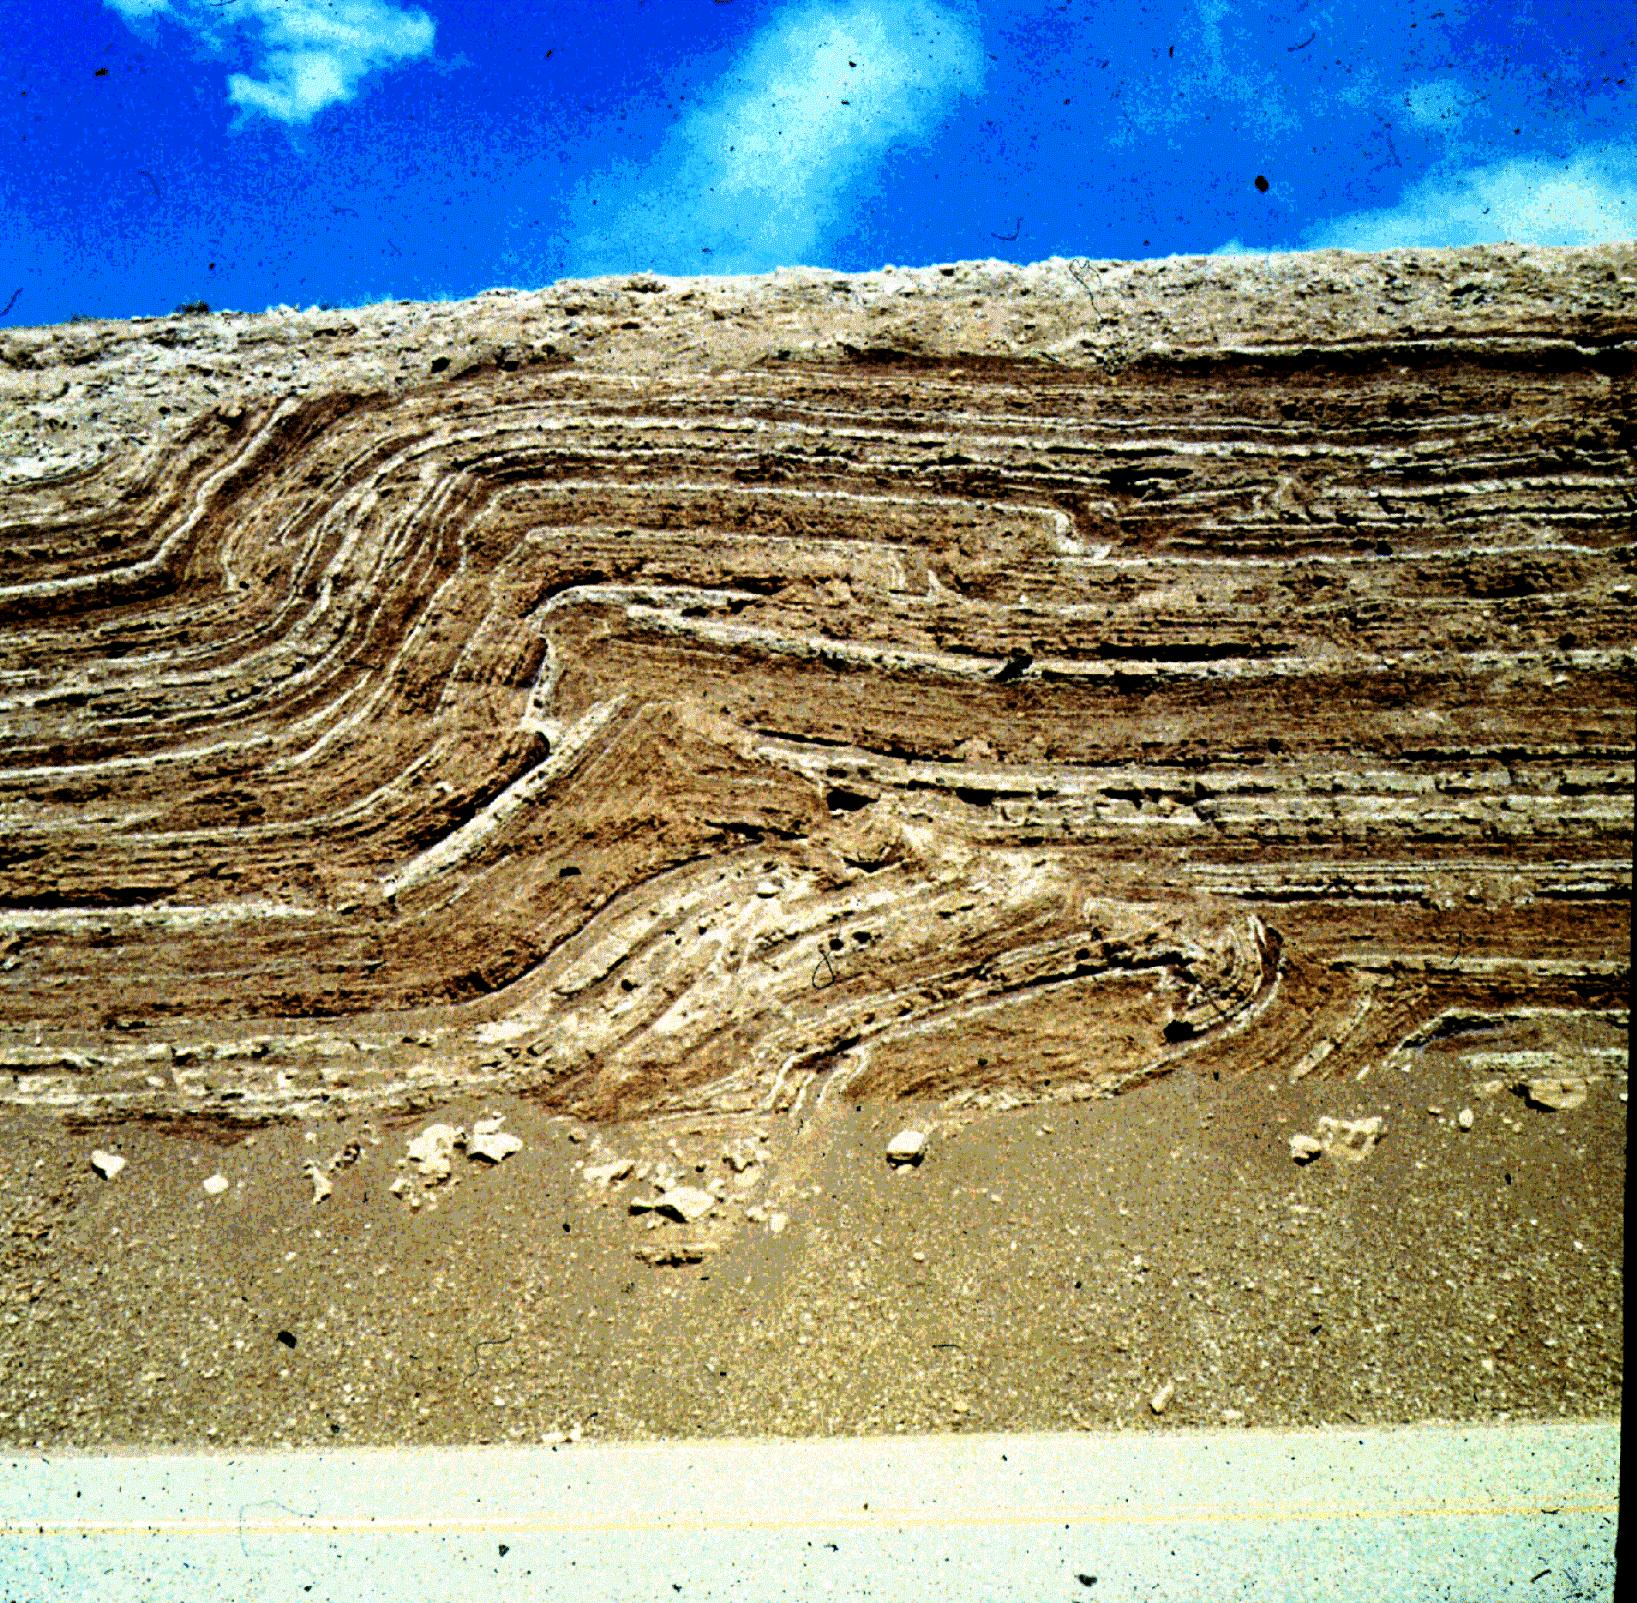 Images Of Folds And Faults